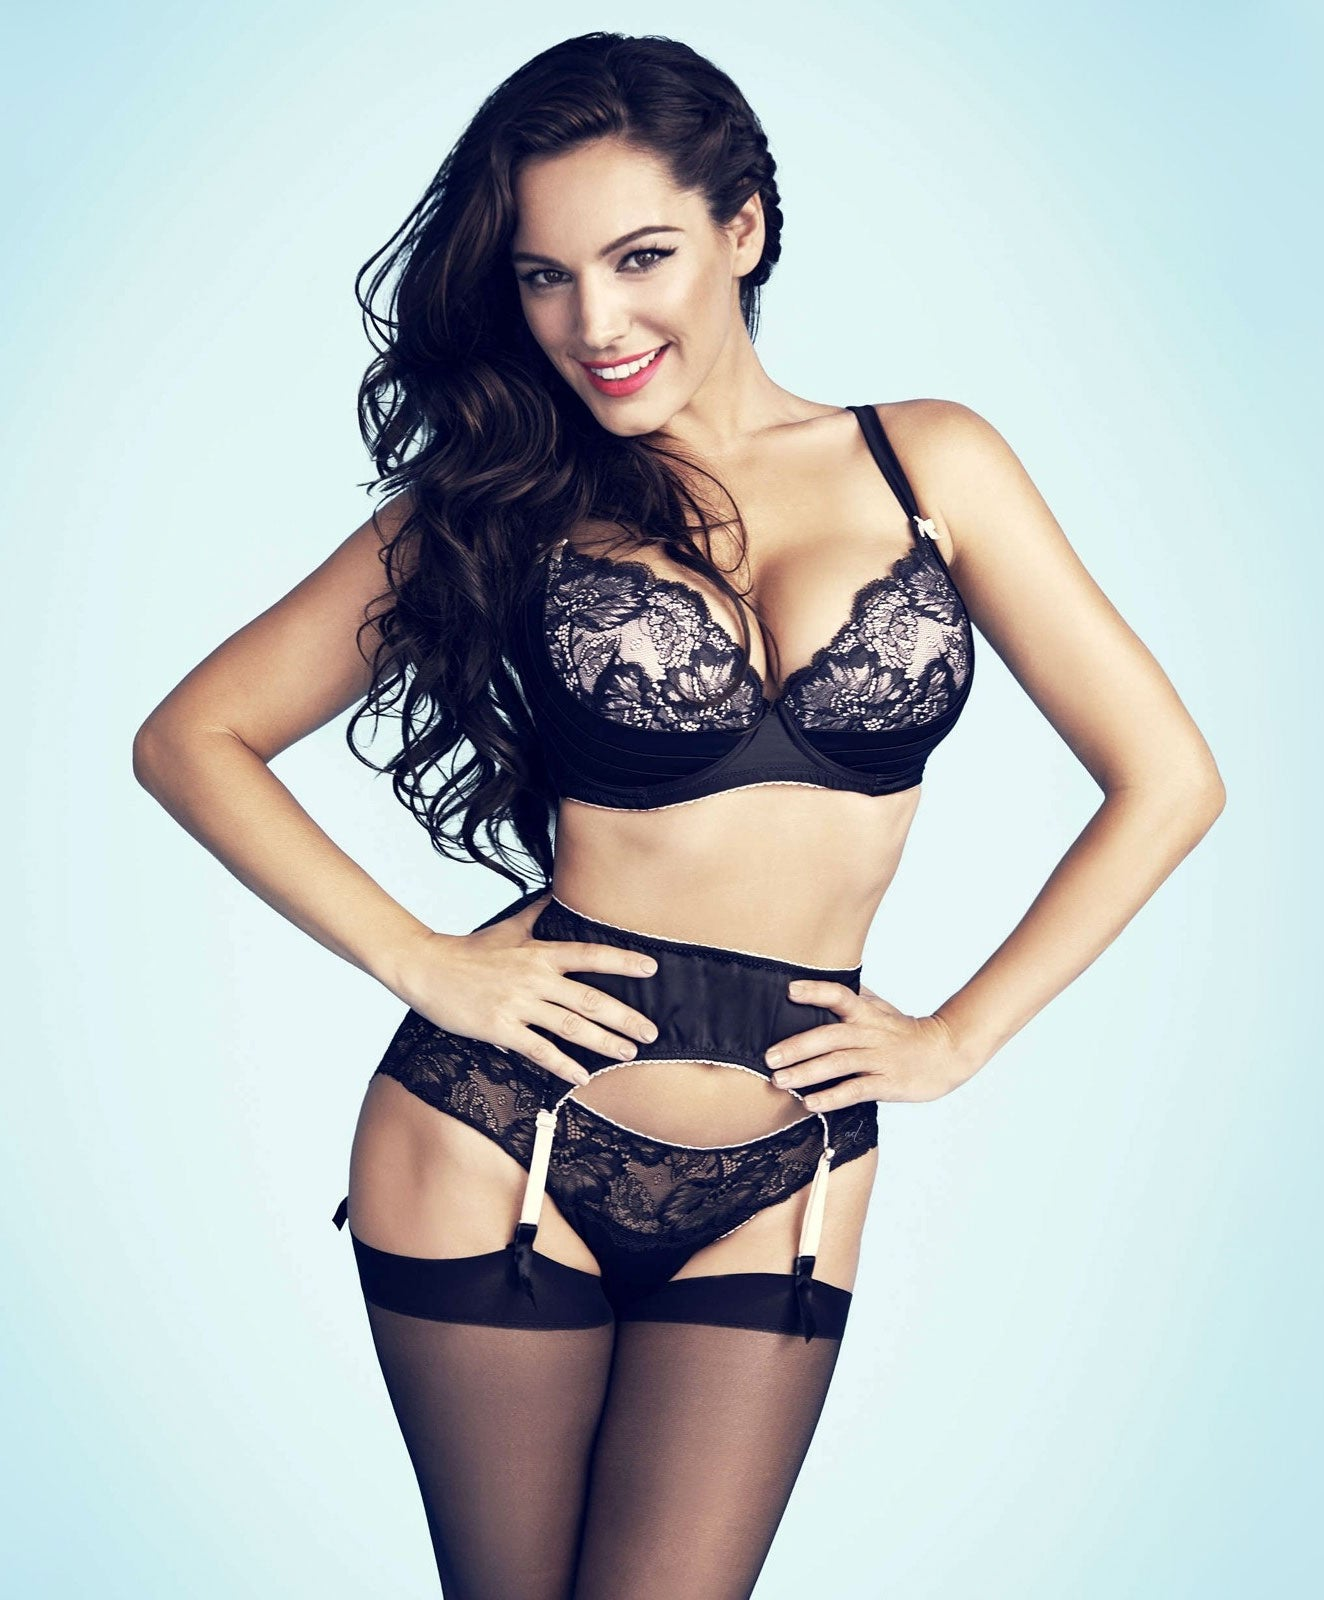 Elite Lingerie Shop